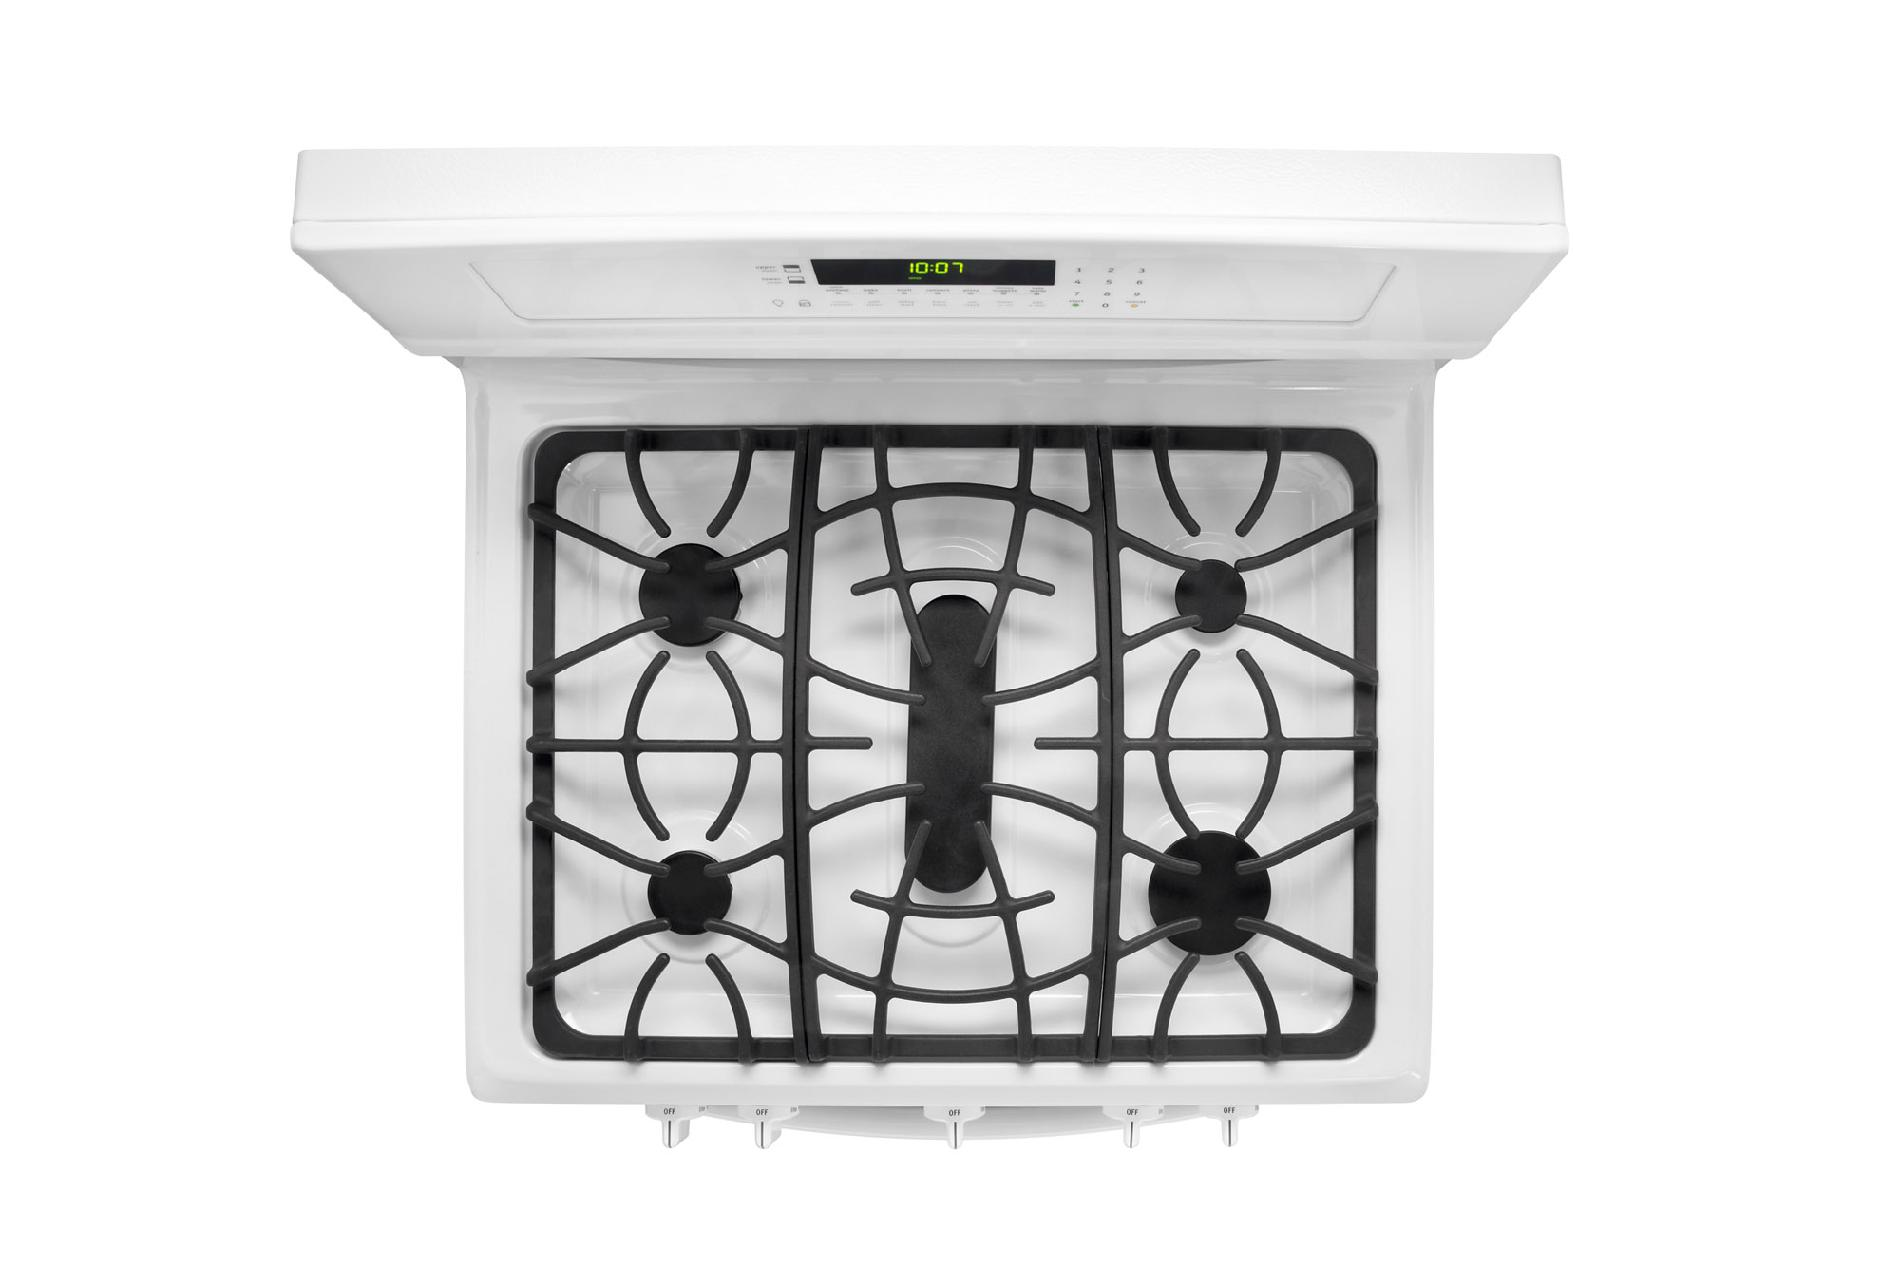 Frigidaire Gallery 5.8 cu. ft. Double-Oven Gas Range - White